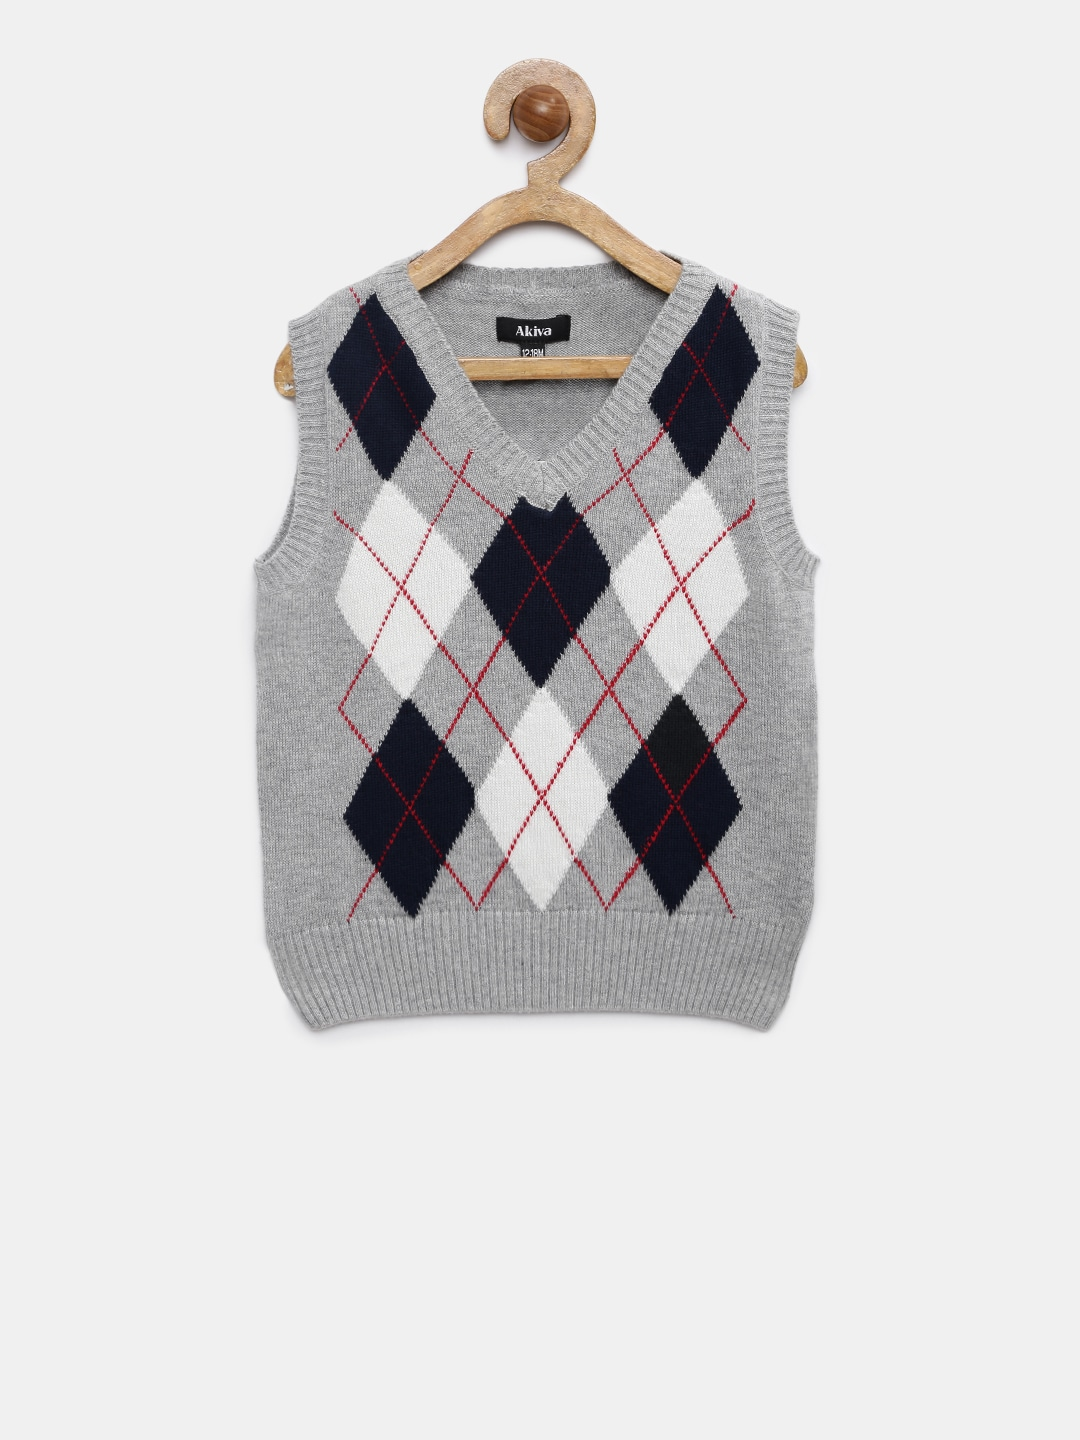 ab406a03a9264 Sleeveless Sweater - Buy Sleeveless Sweater online in India